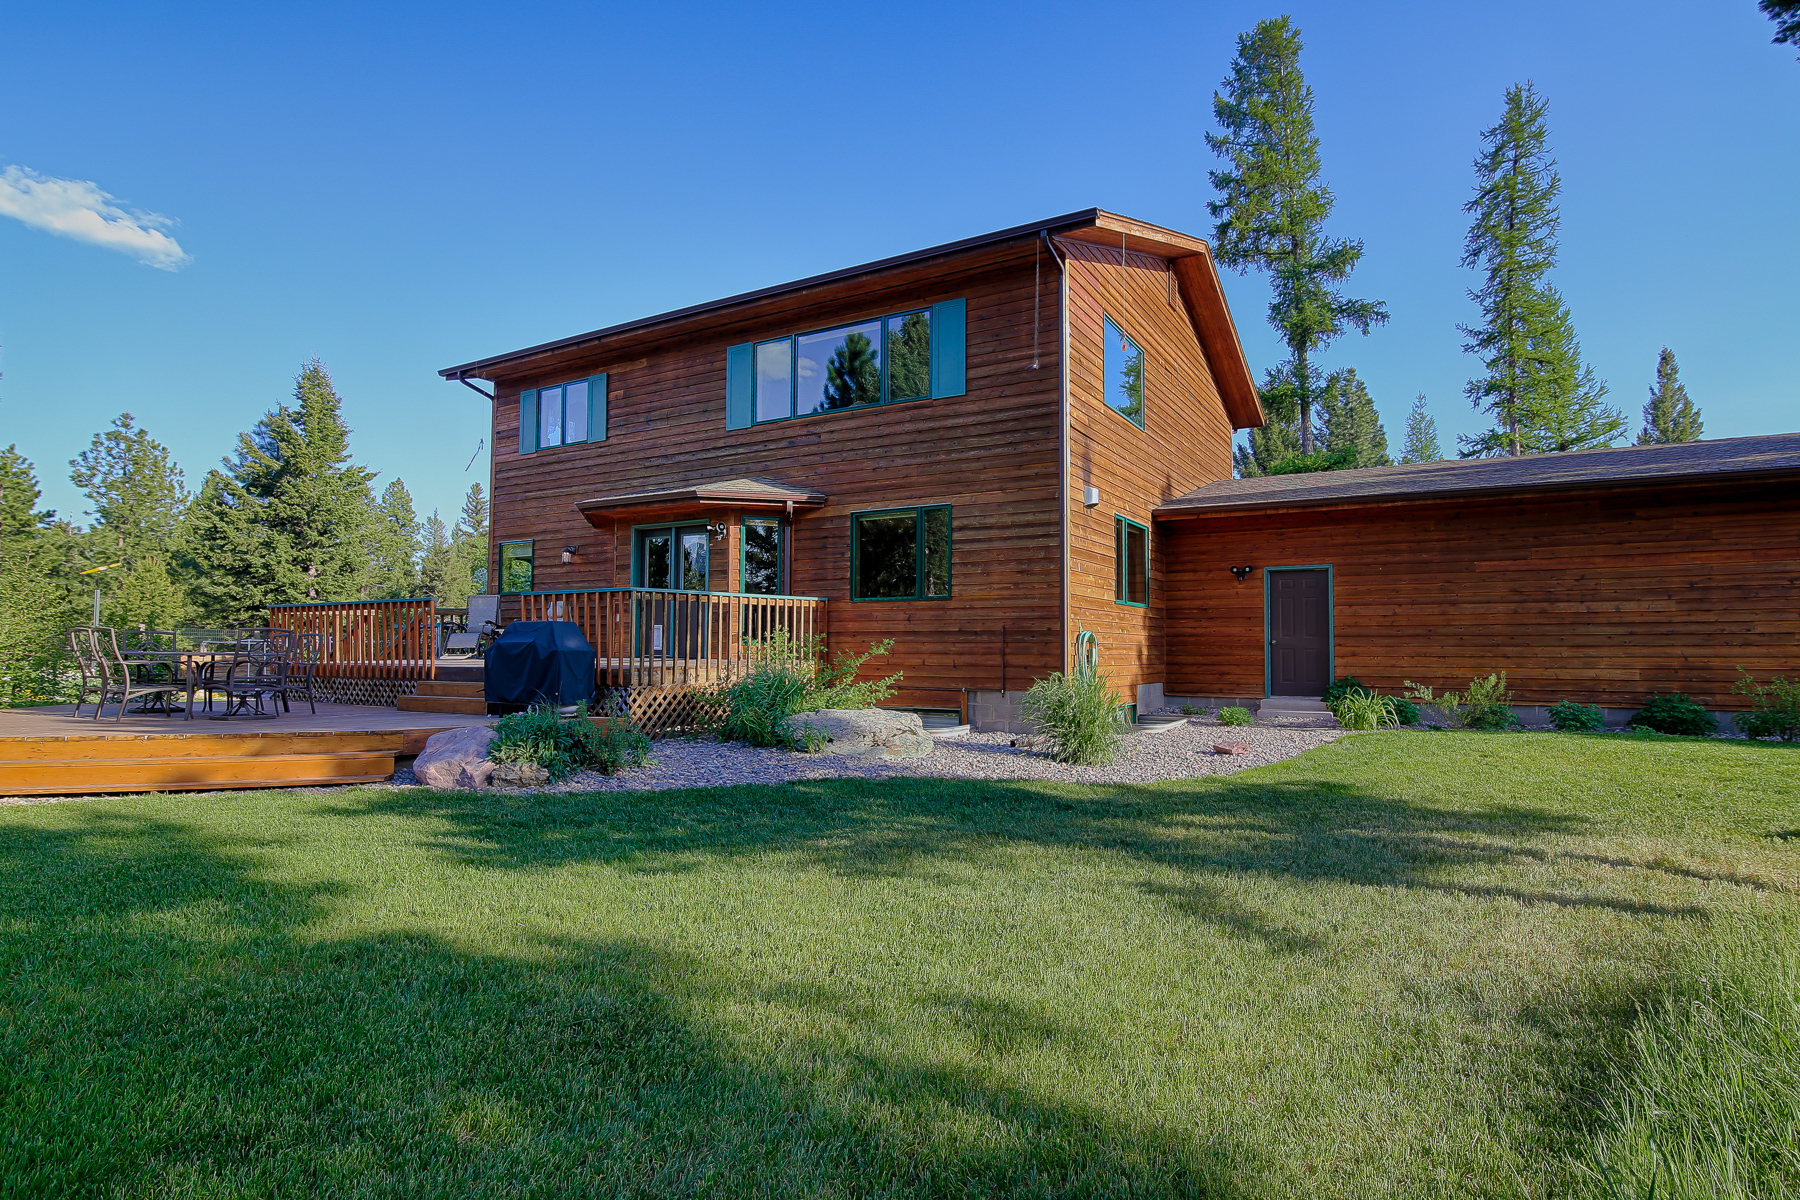 Single Family Home for Sale at 691 Airport Rd , Seeley Lake, MT 59868 691 Airport Rd Seeley Lake, Montana 59868 United States